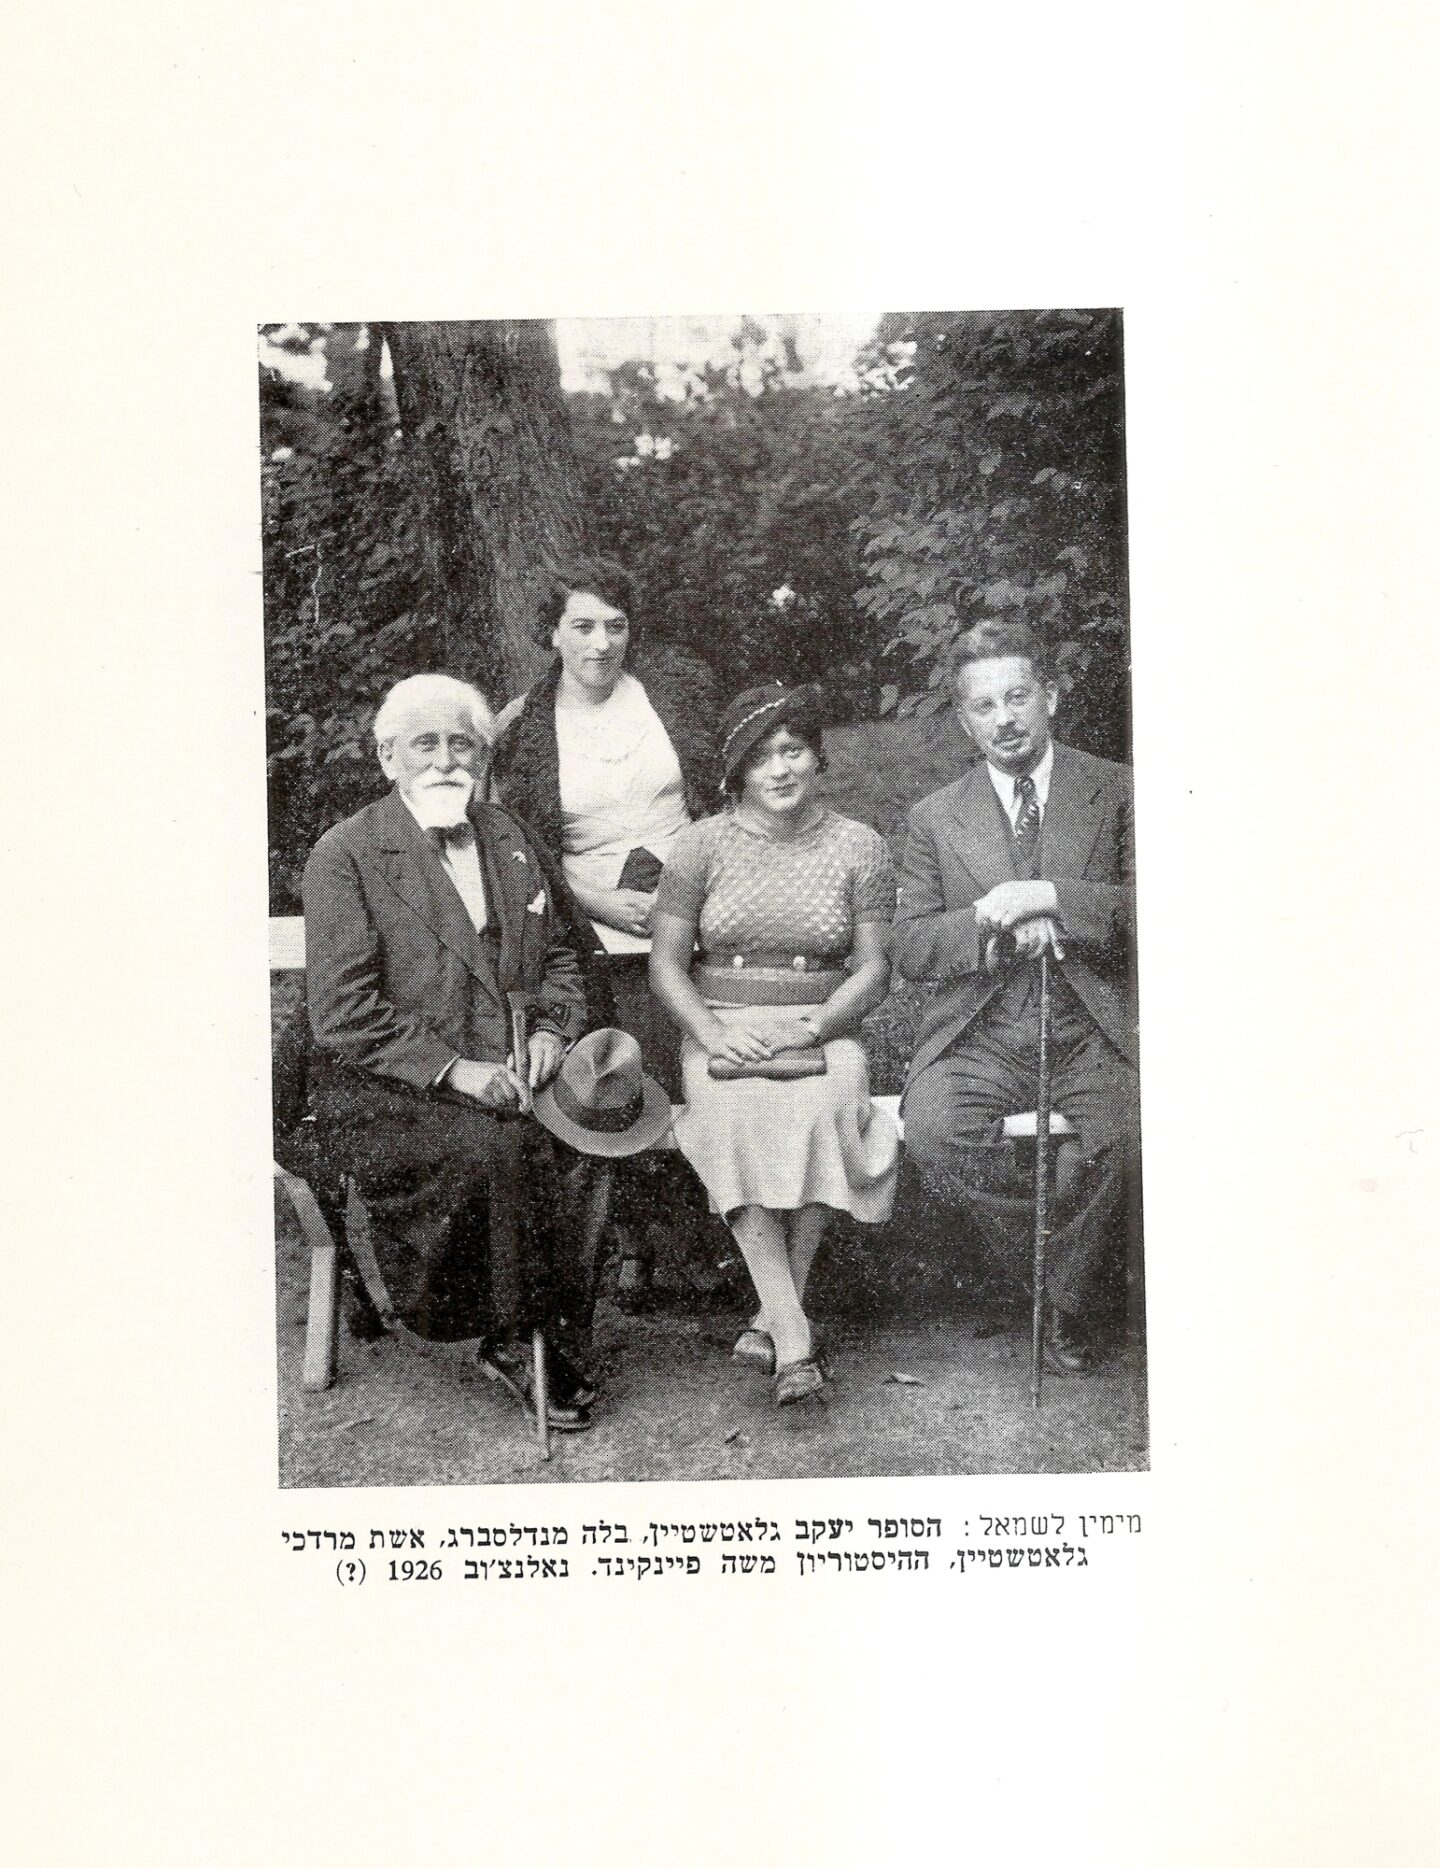 "<p>From right to left: Jacob Glat­stein, Bel­la Man­dels­berg, Glat­stein's sis­ter-in-law, and Moshe Feinkind, in Nałęczów, from Bel­la Man­dels­berg-Schild­kraut's <em>Mekharim le-toldot Yehude Lublin</em> (Cir­cle of Friends of the Late Bel­la Mandelsberg-Schildkraut:Tel-Aviv, <span class=""numbers"">1965</span>). Cour­tesy Moni­ka Adamcyk-Garbowska.</p>"